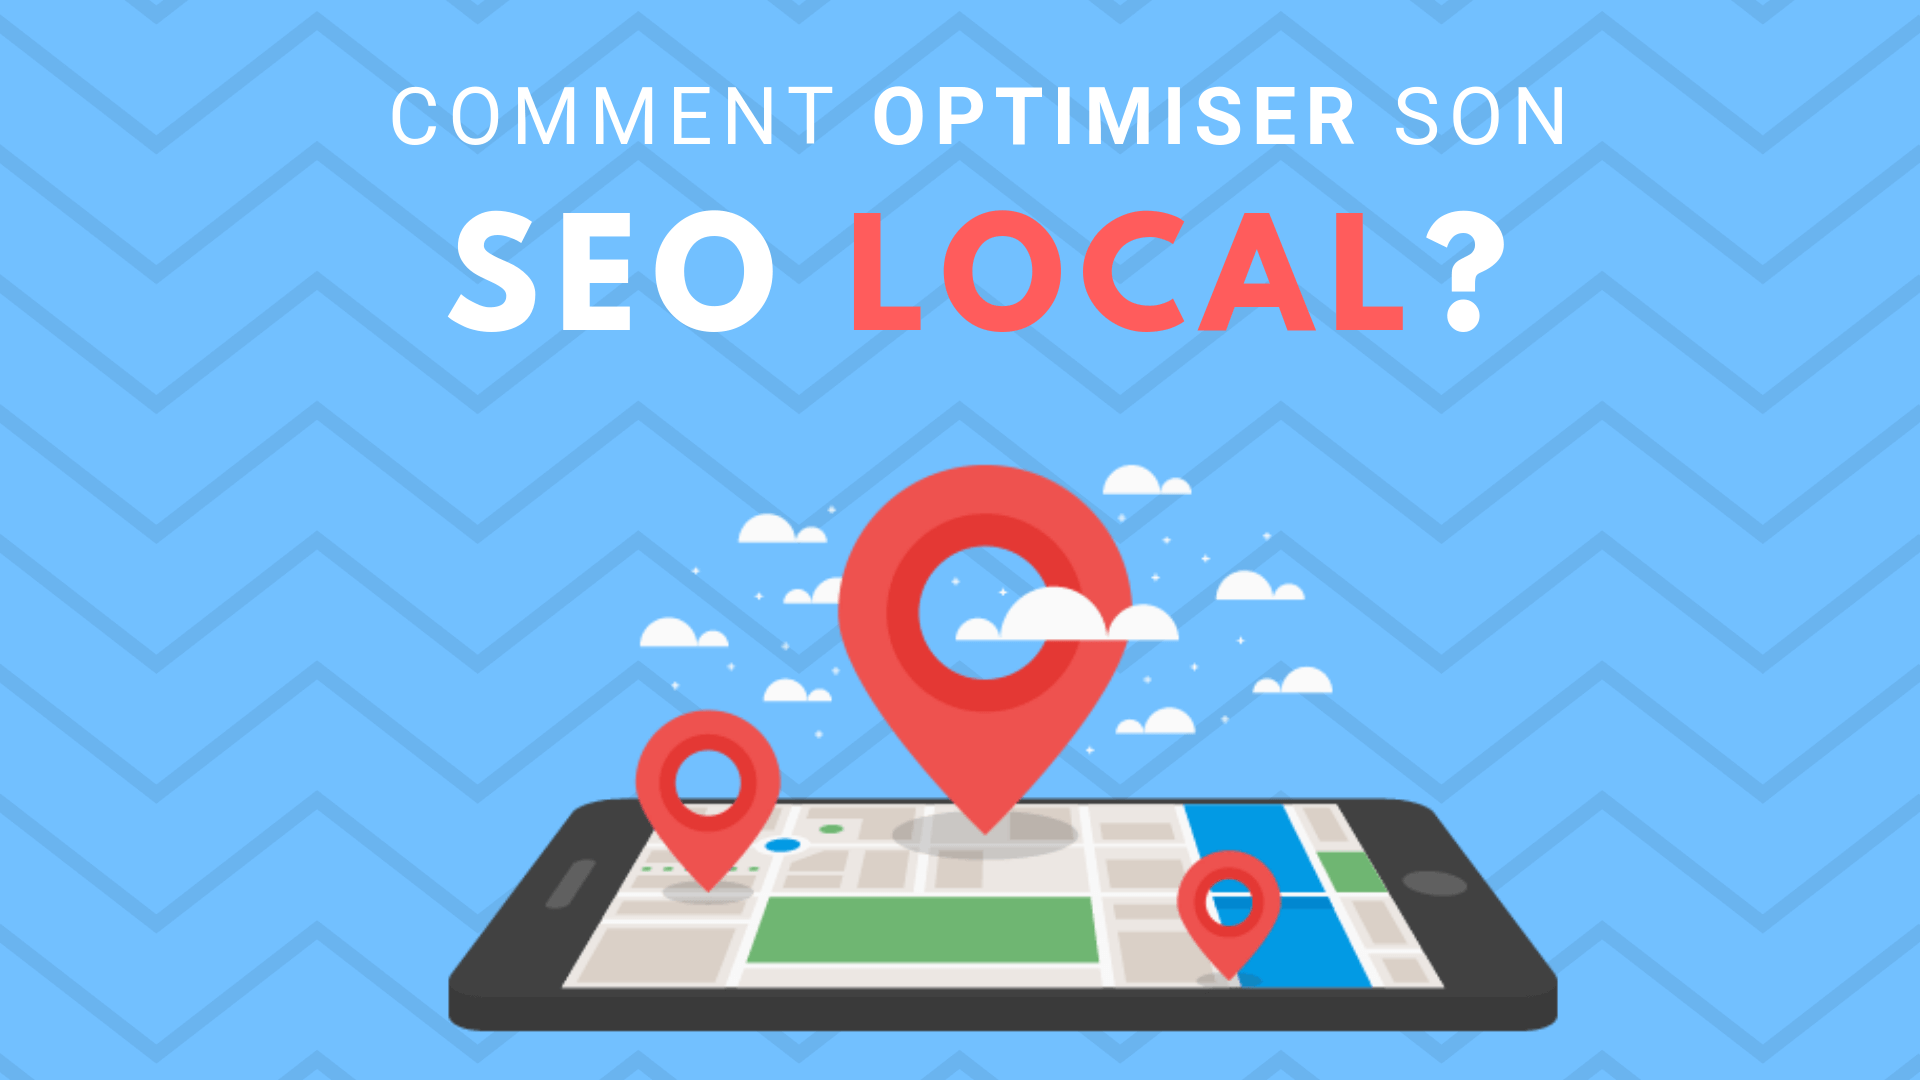 Comment optimiser son référencement local